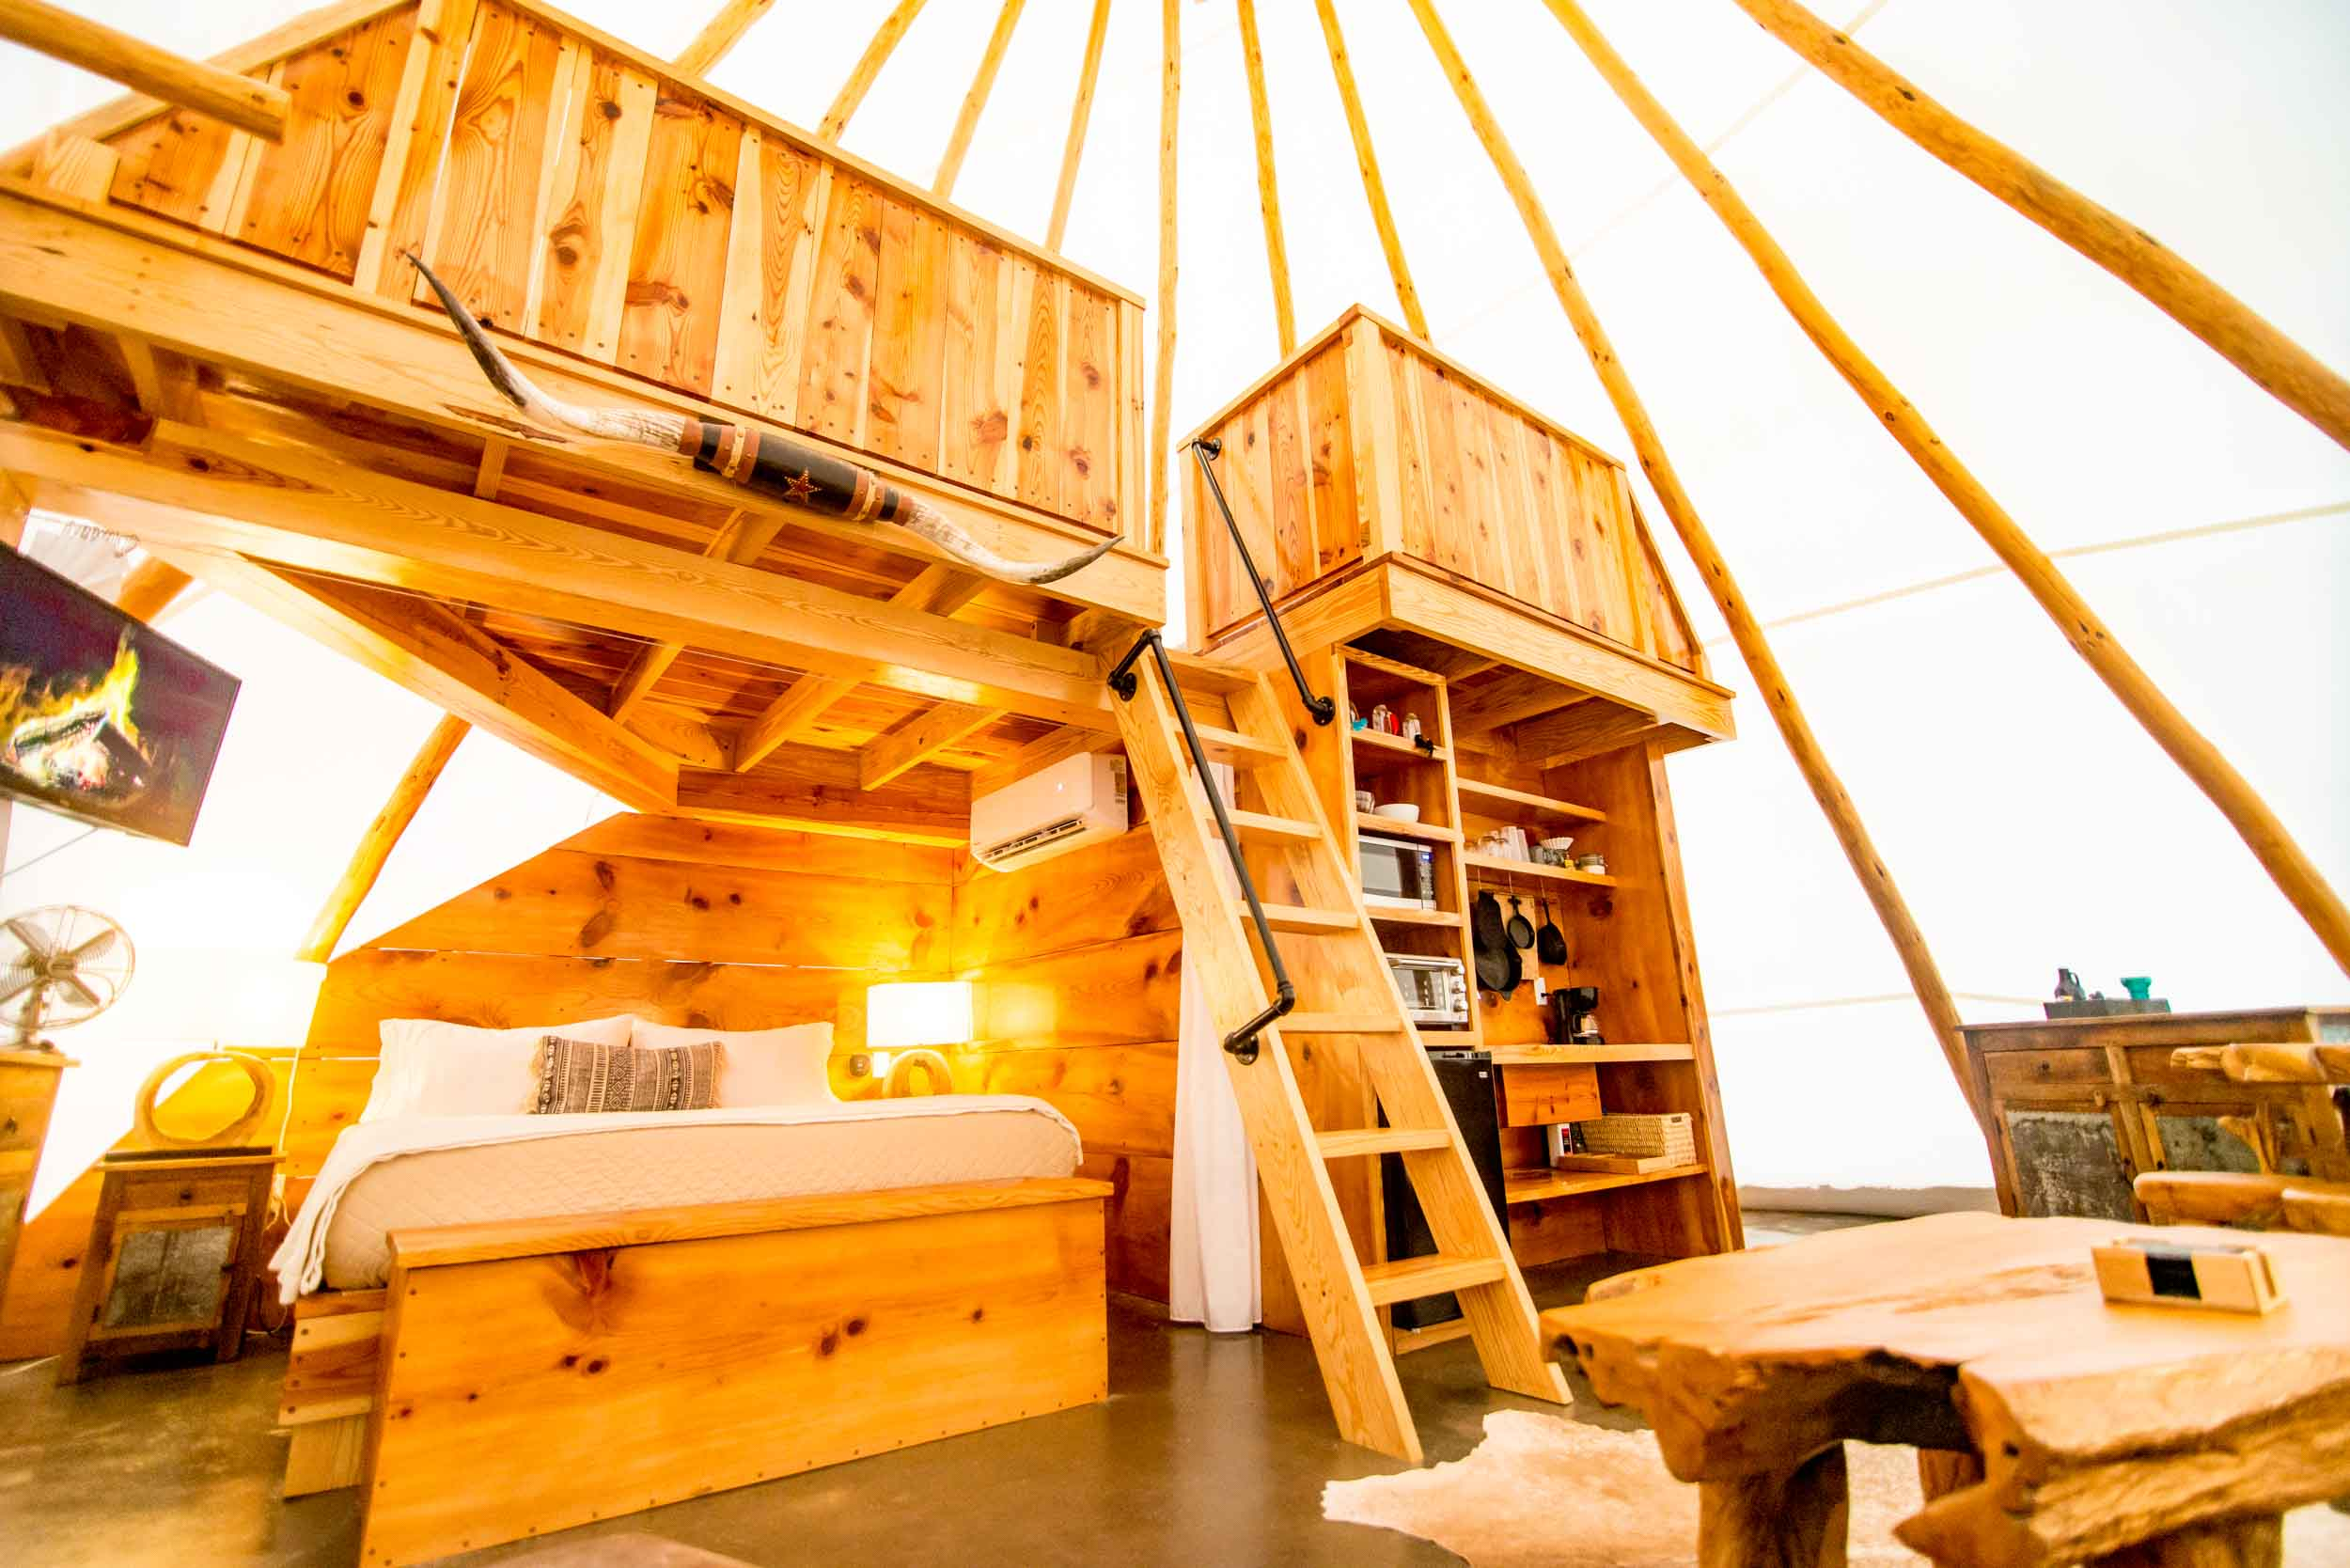 architecture+photographer+tipis+interiors+photography+airbnb+photo-6.jpg